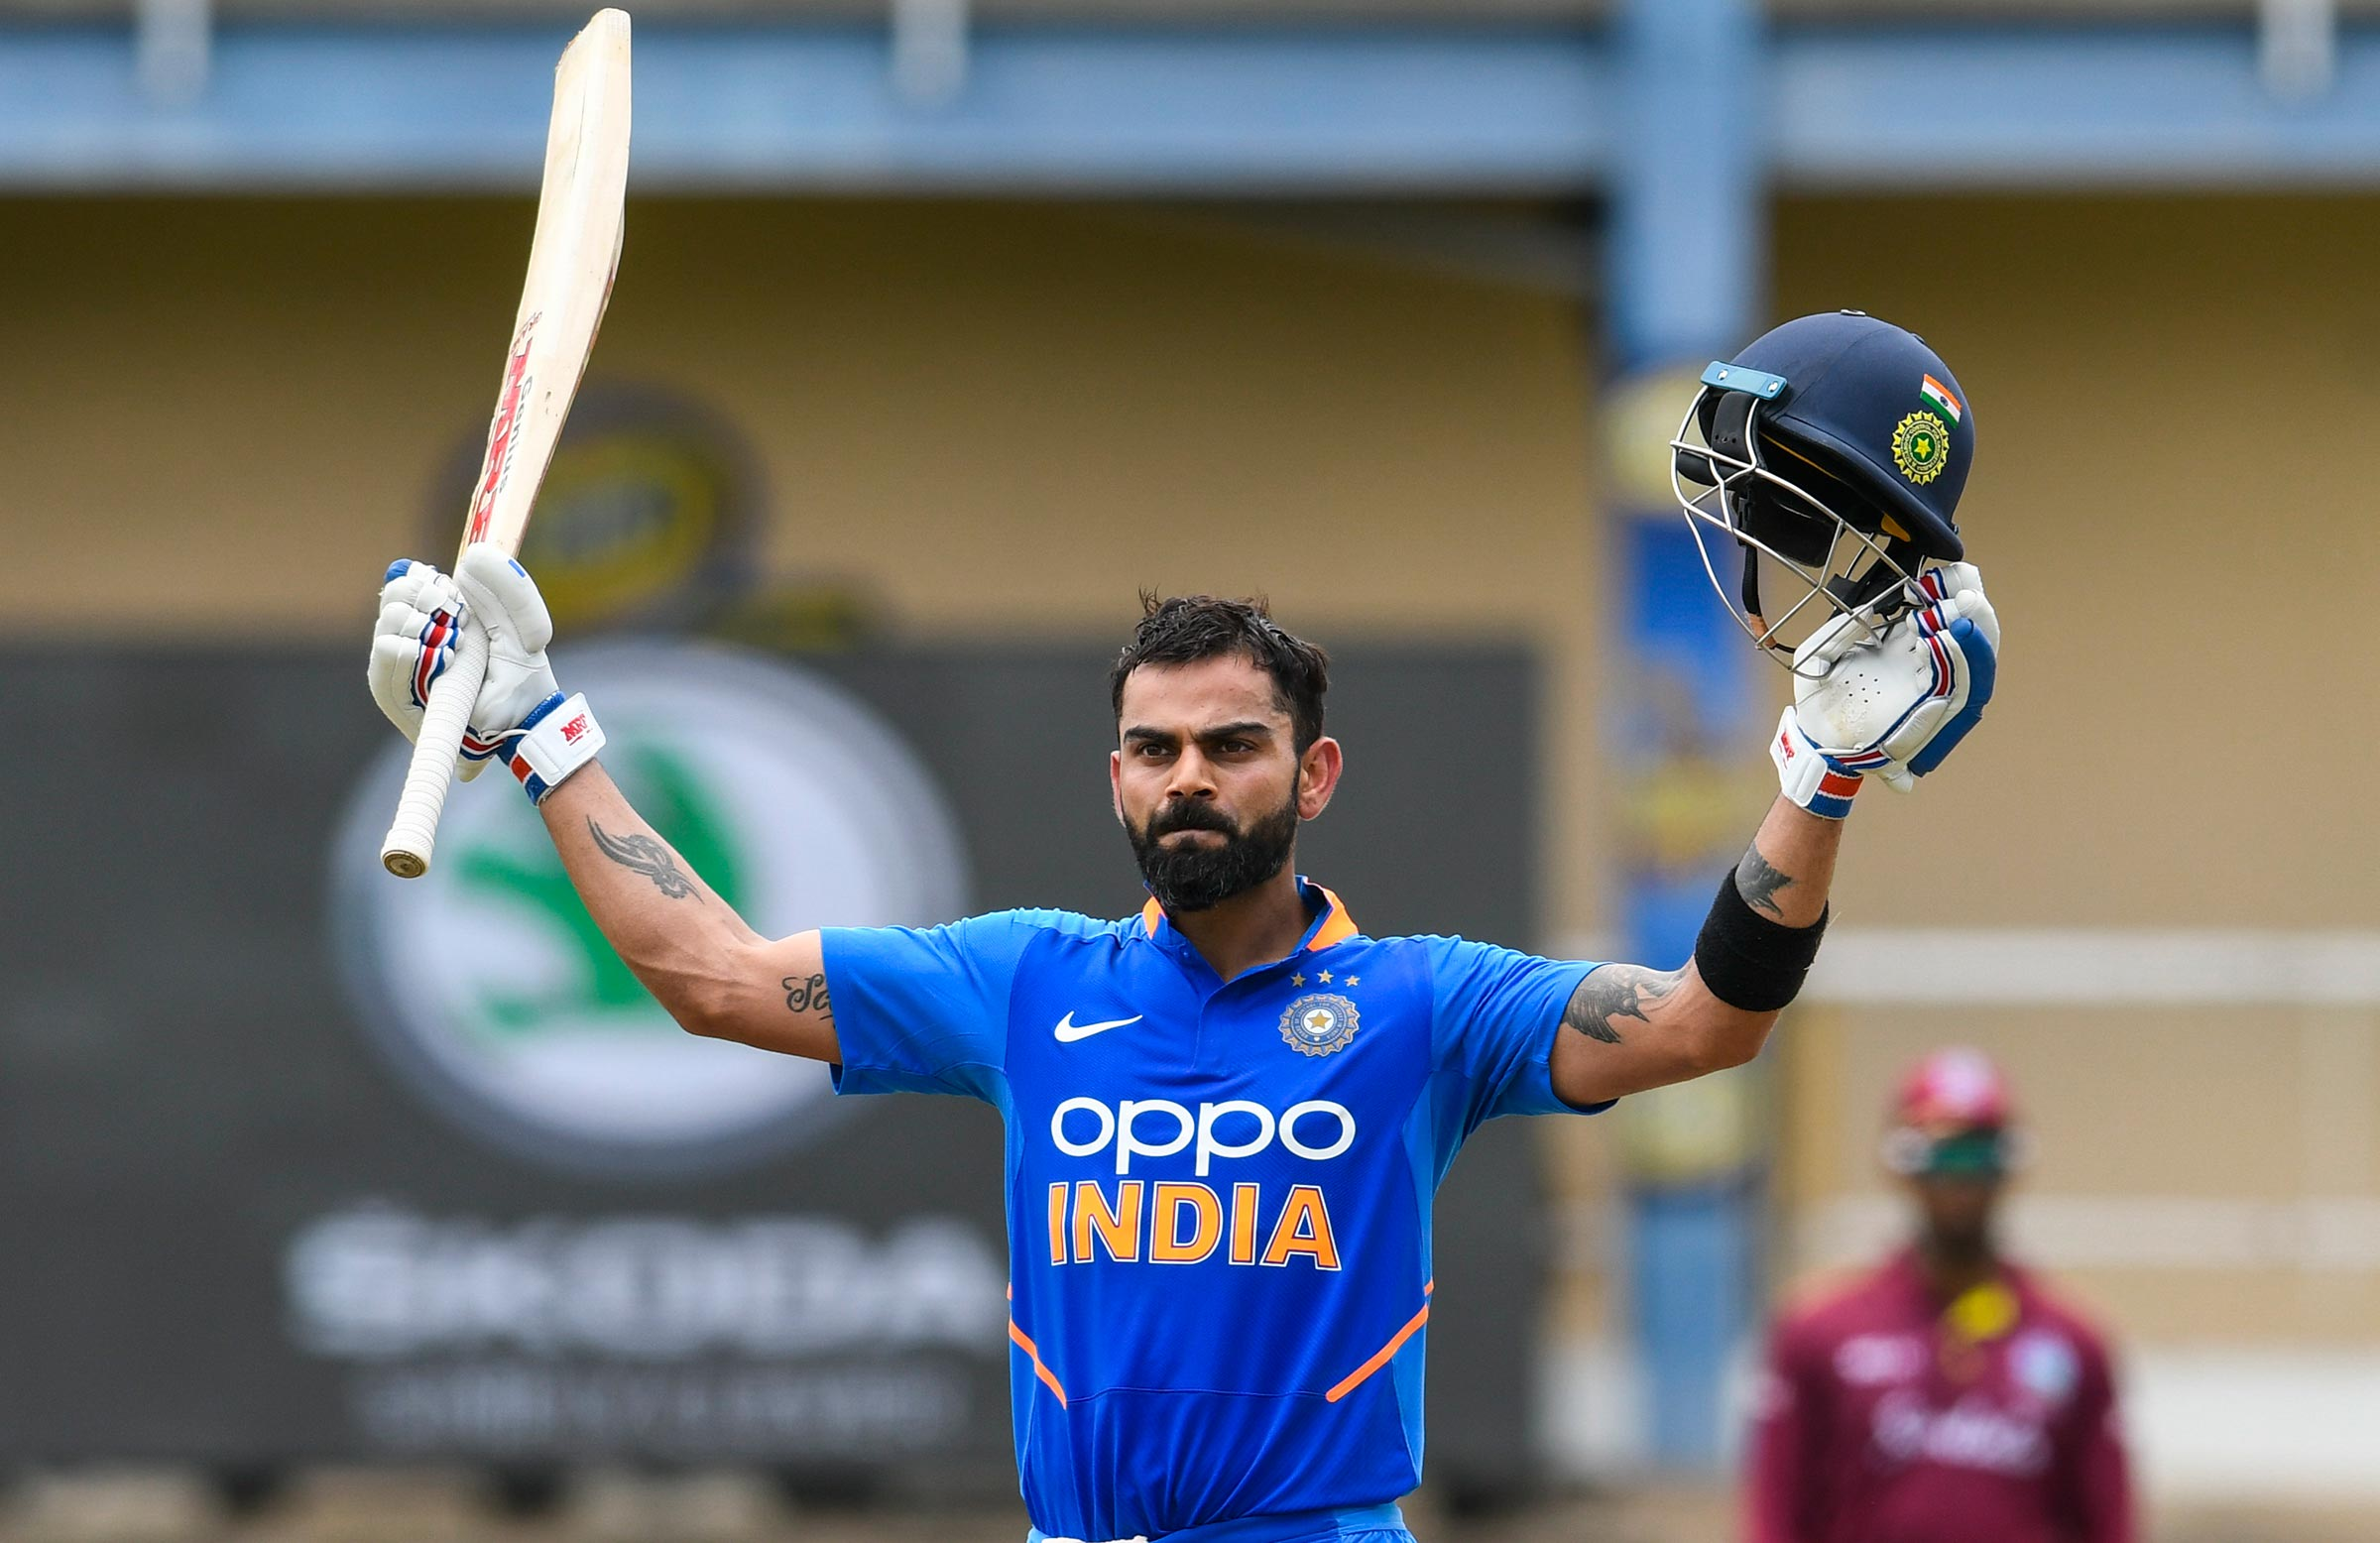 Kohli posted his 42nd ODI century // Getty